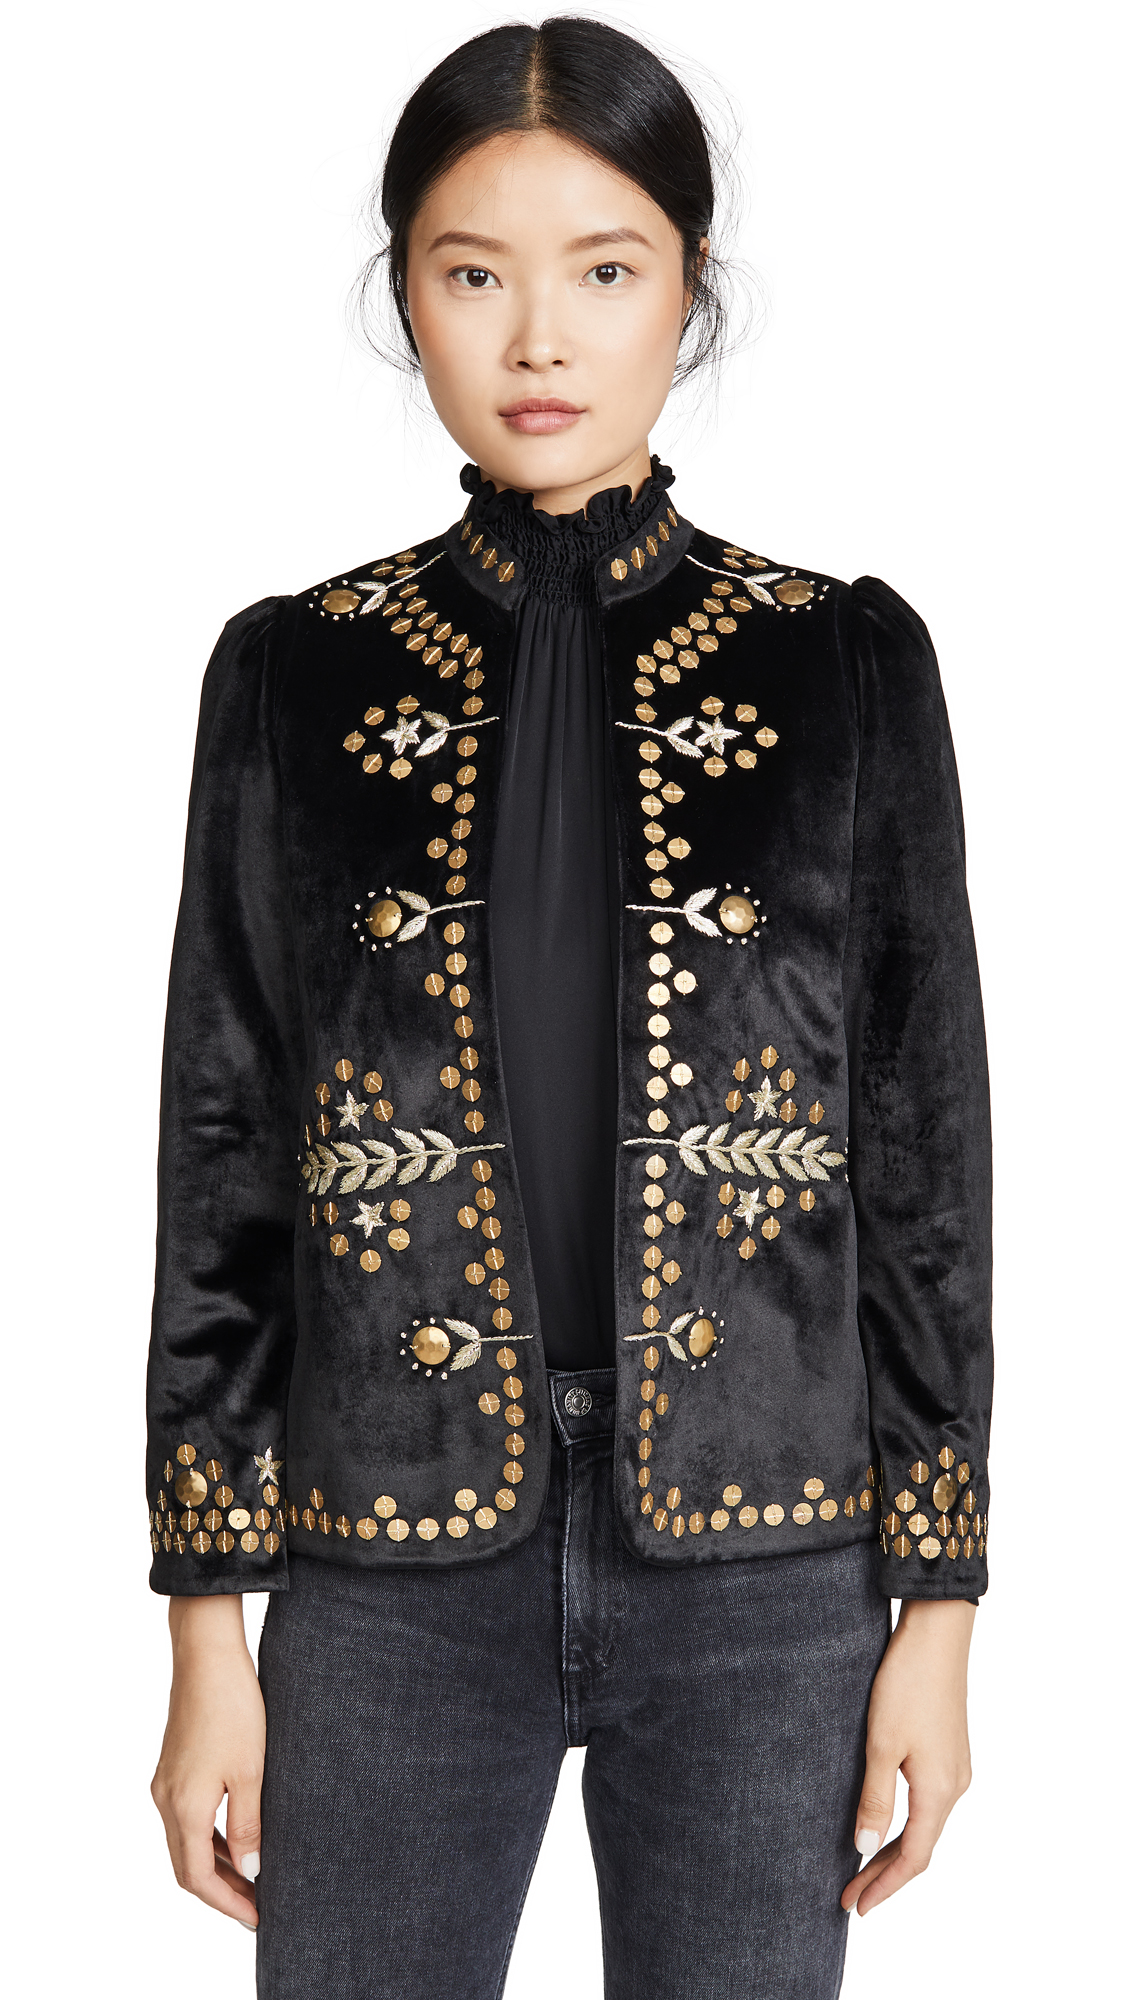 Alix of Bohemia Penelope Black Velvet Jacket with Gold Zardosi Embroidery - Black/Gold